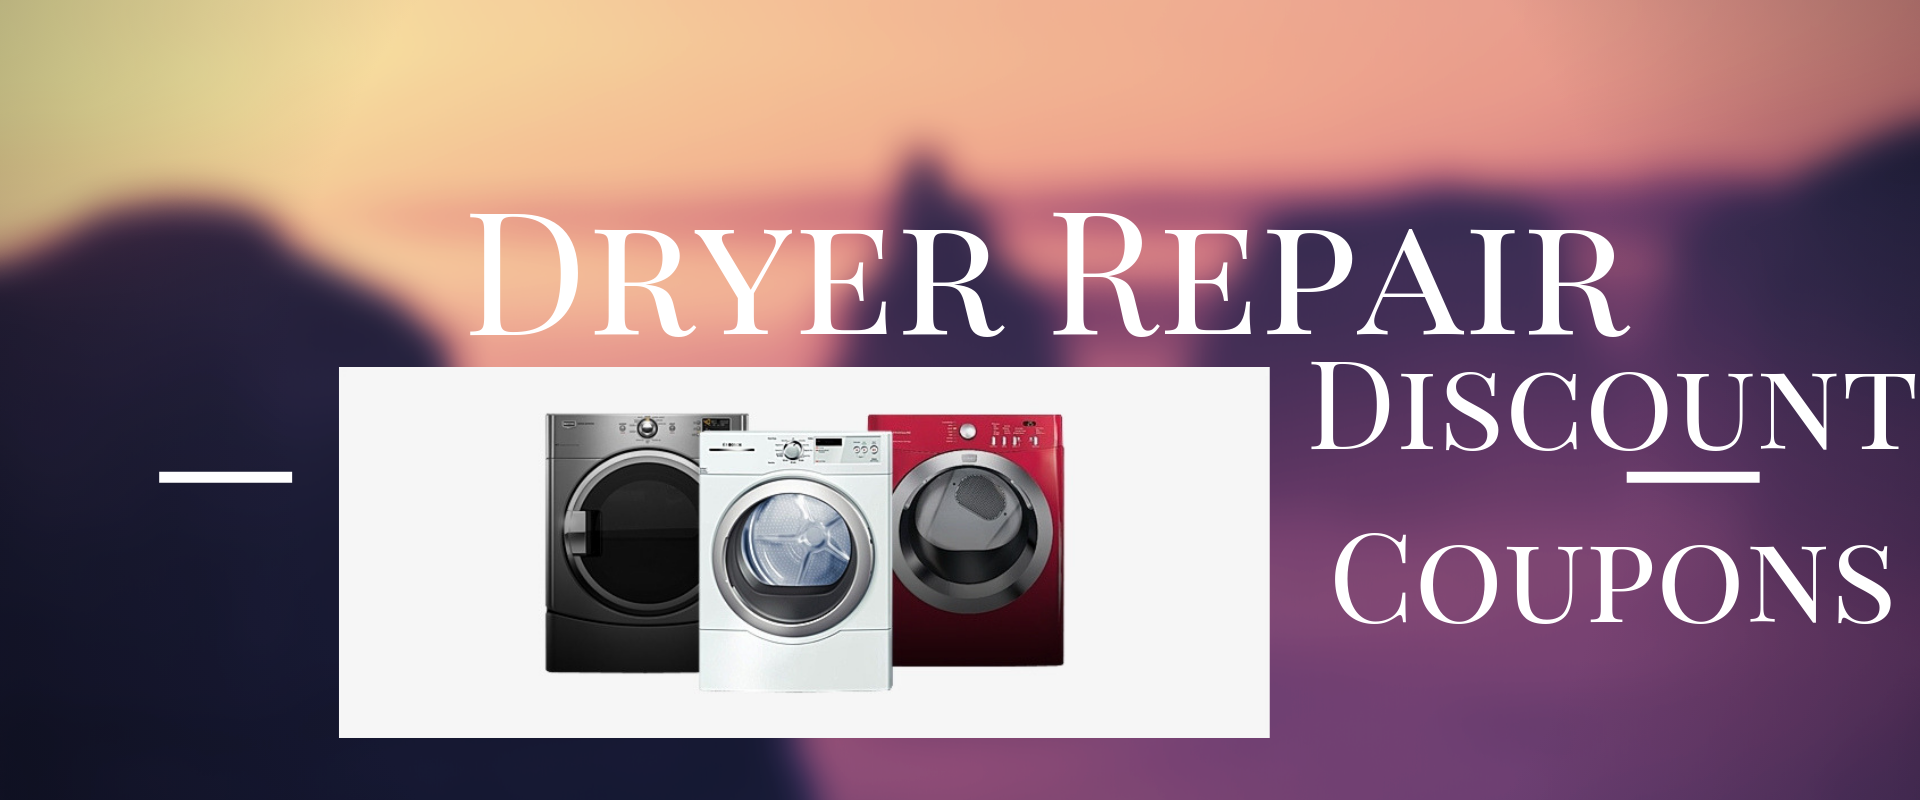 dryer-repair-discount-coupons